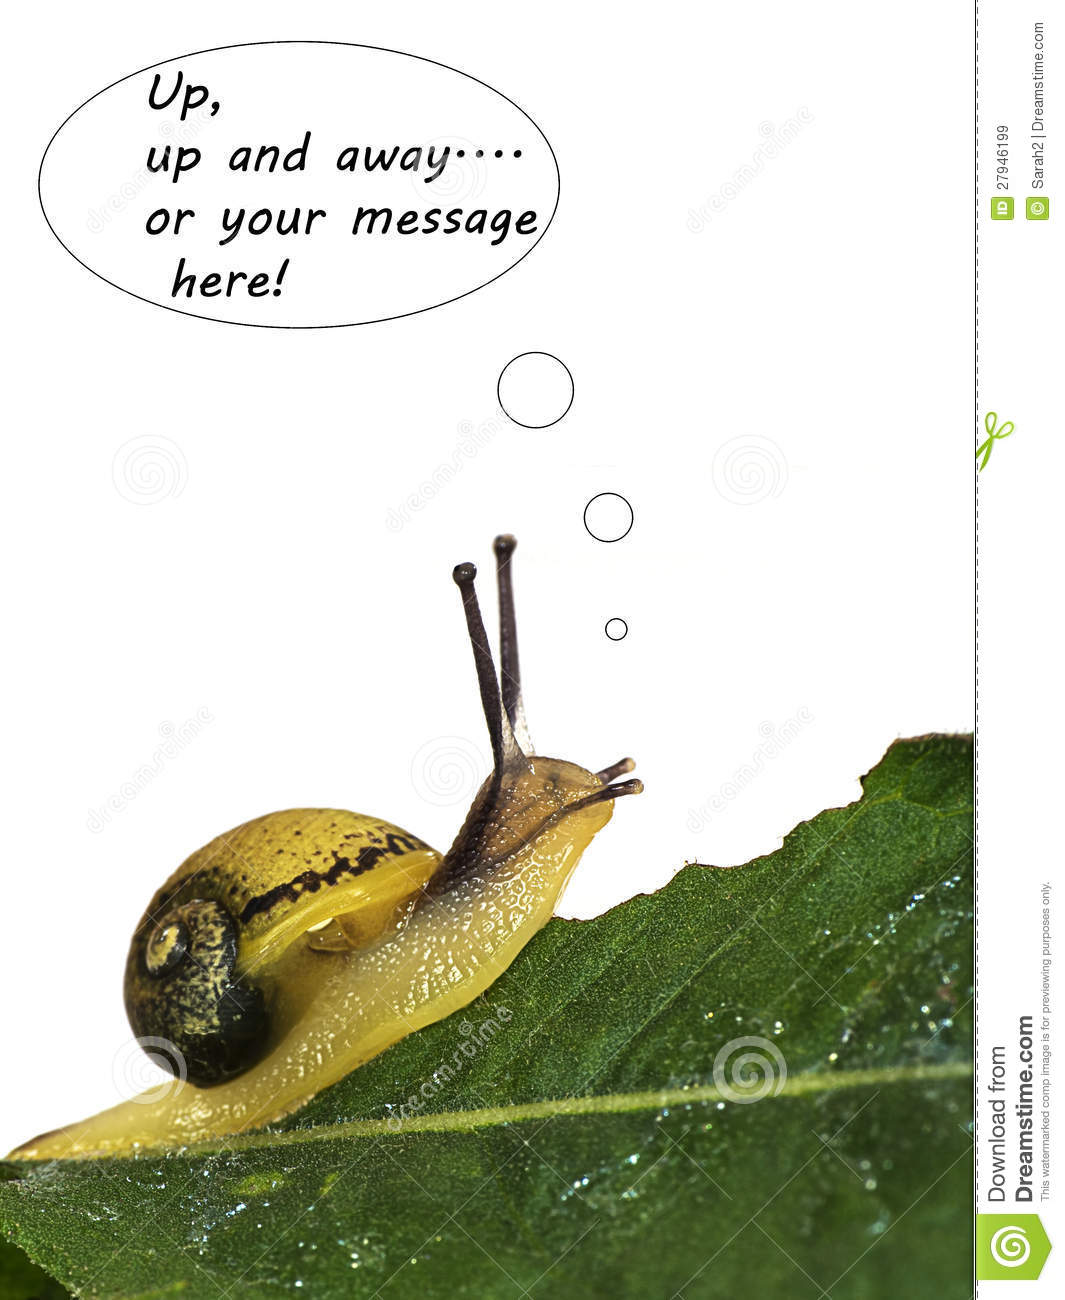 The Edible Snails Escape - Metaphor Royalty Free Stock ...